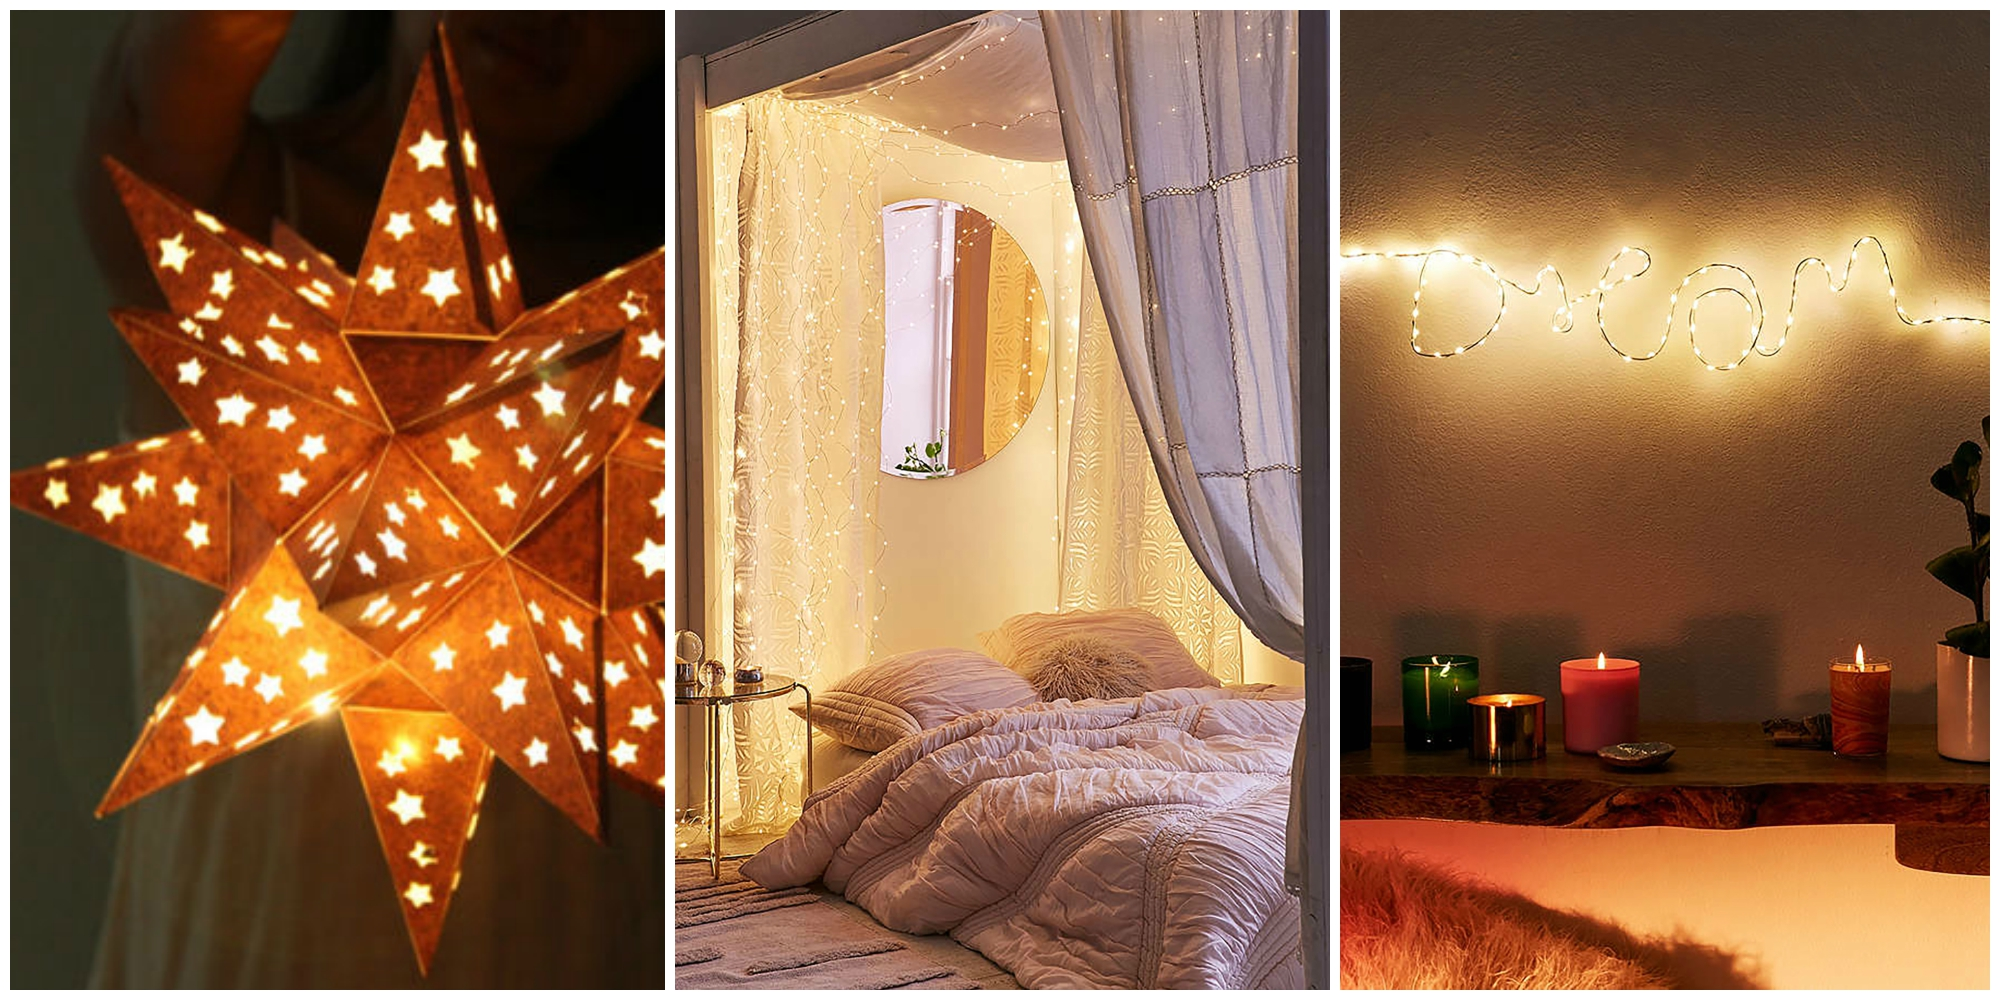 24 ways to decorate your home with christmas lights for Fairytale inspired home decor